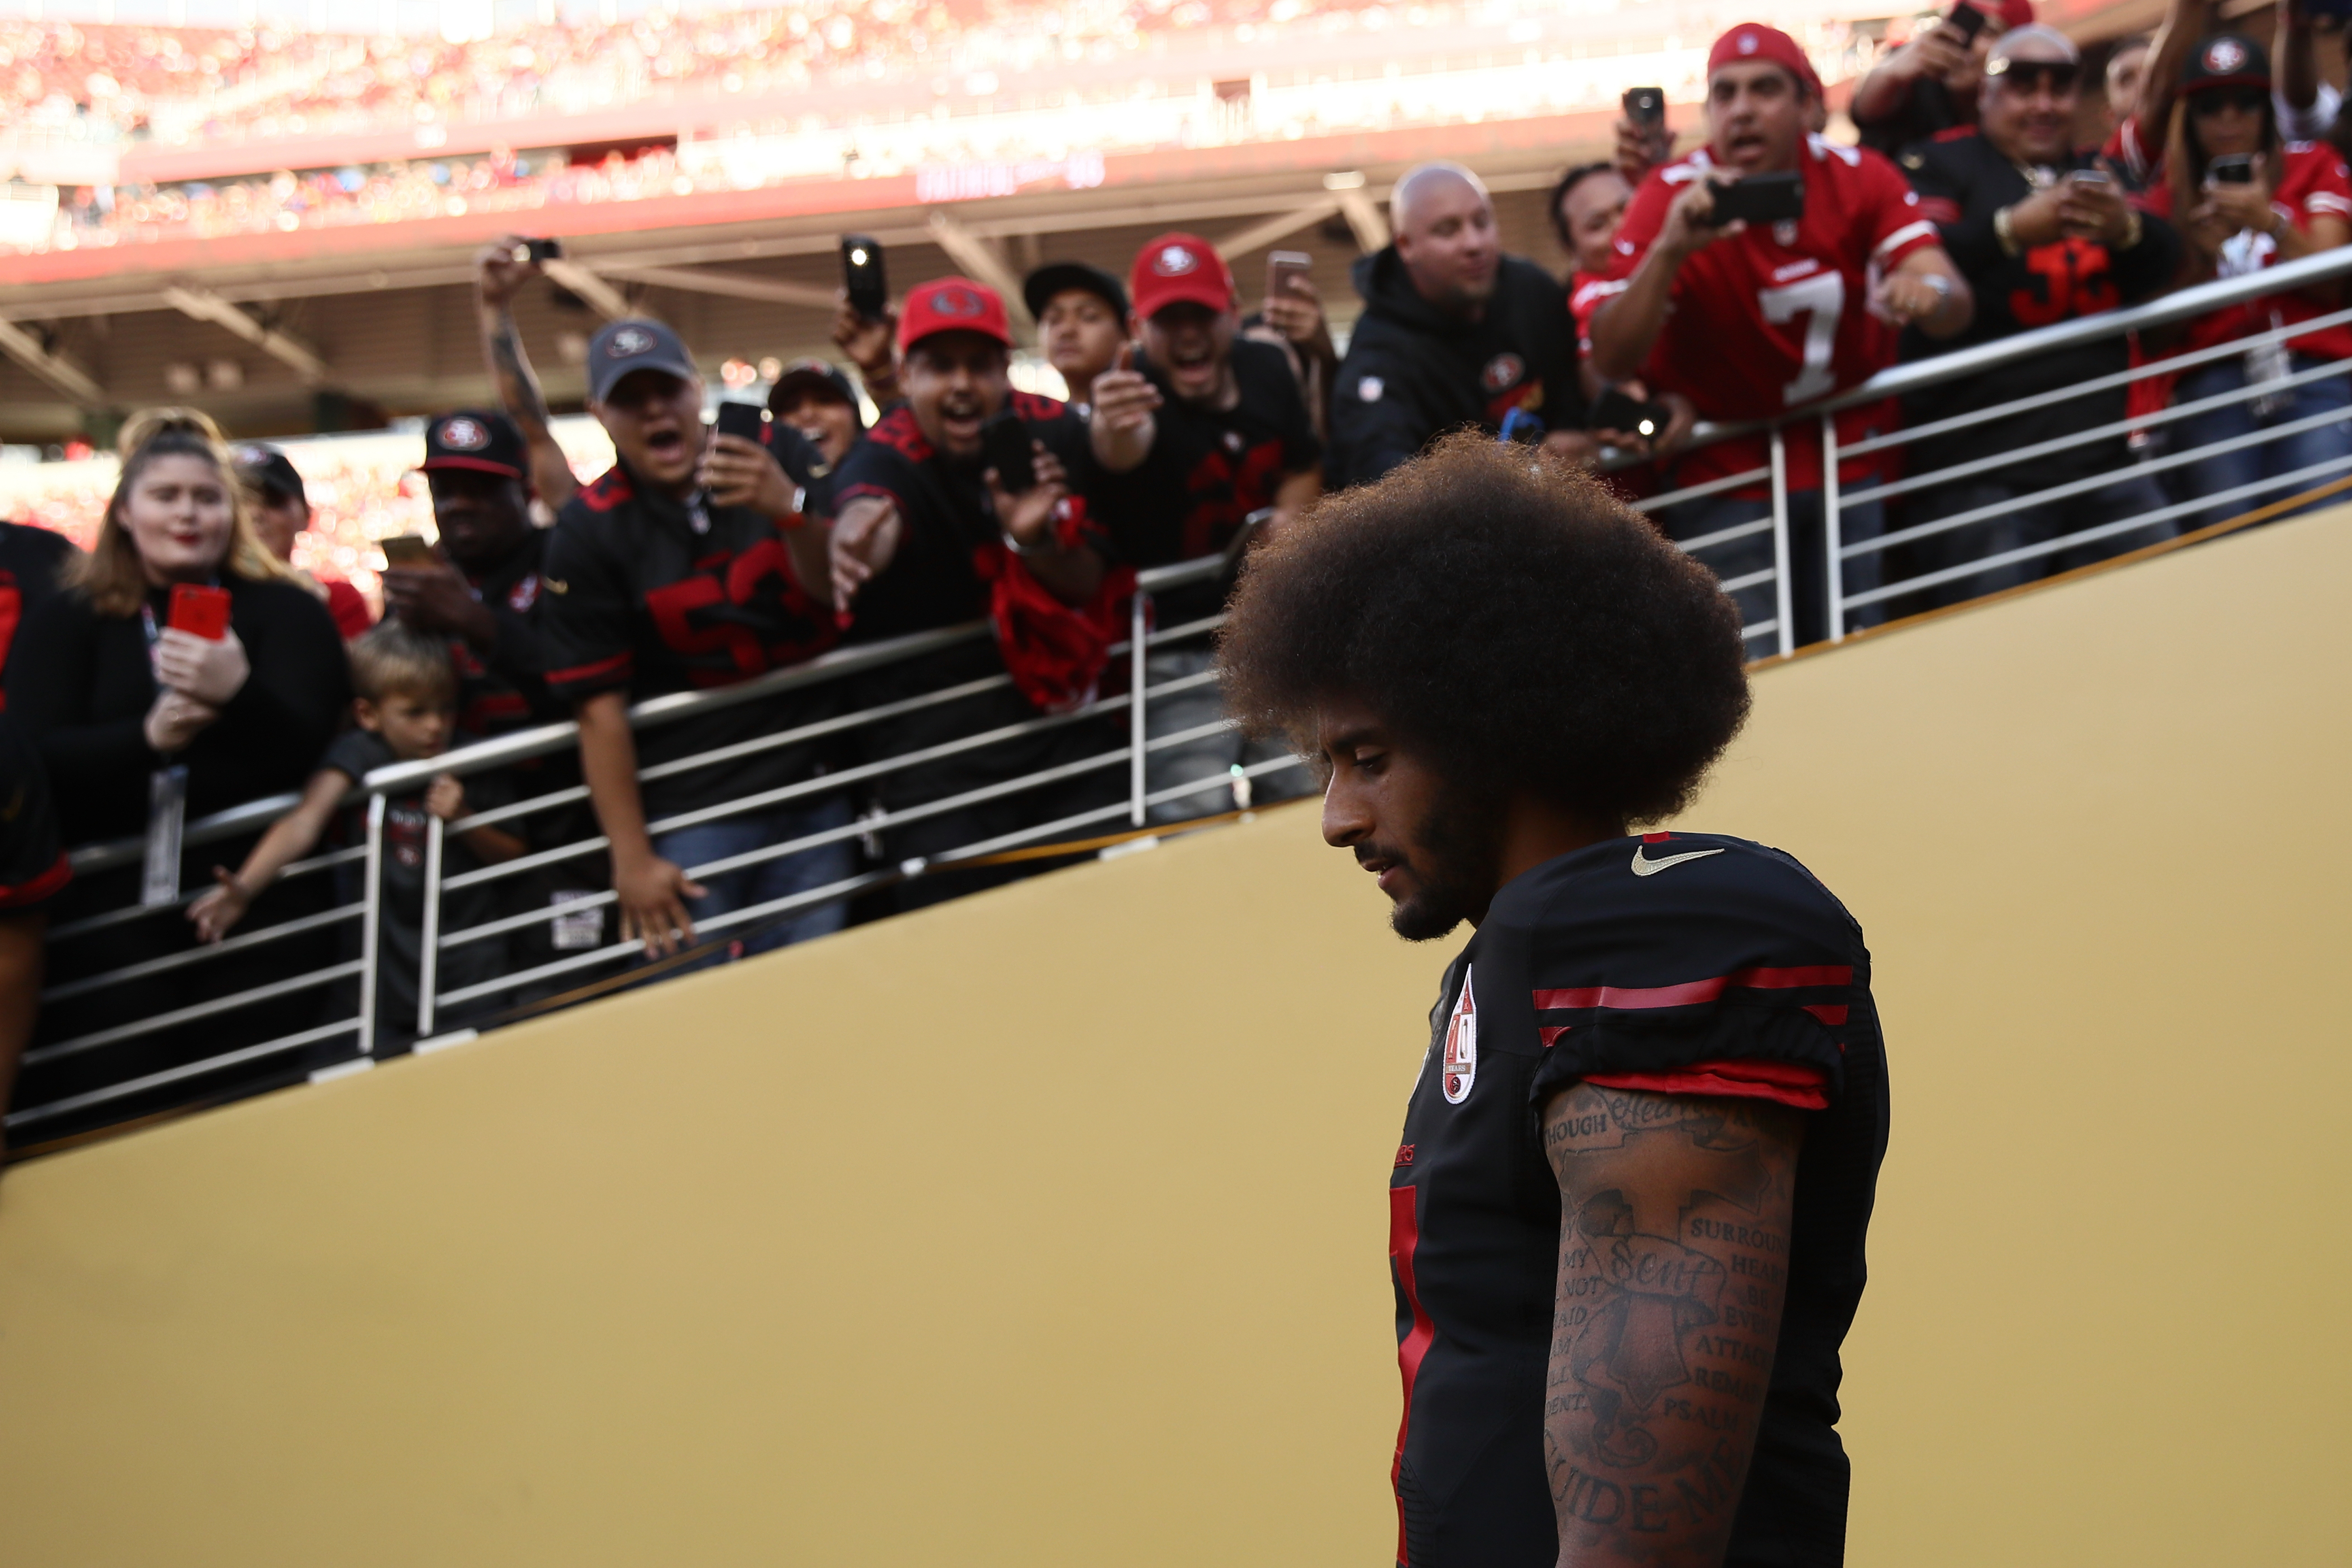 Fans have not always been open to listening to Colin Kaepernick's message about social injustice, but his protests during the national anthem have prompted a national conversation.   (Getty Images)